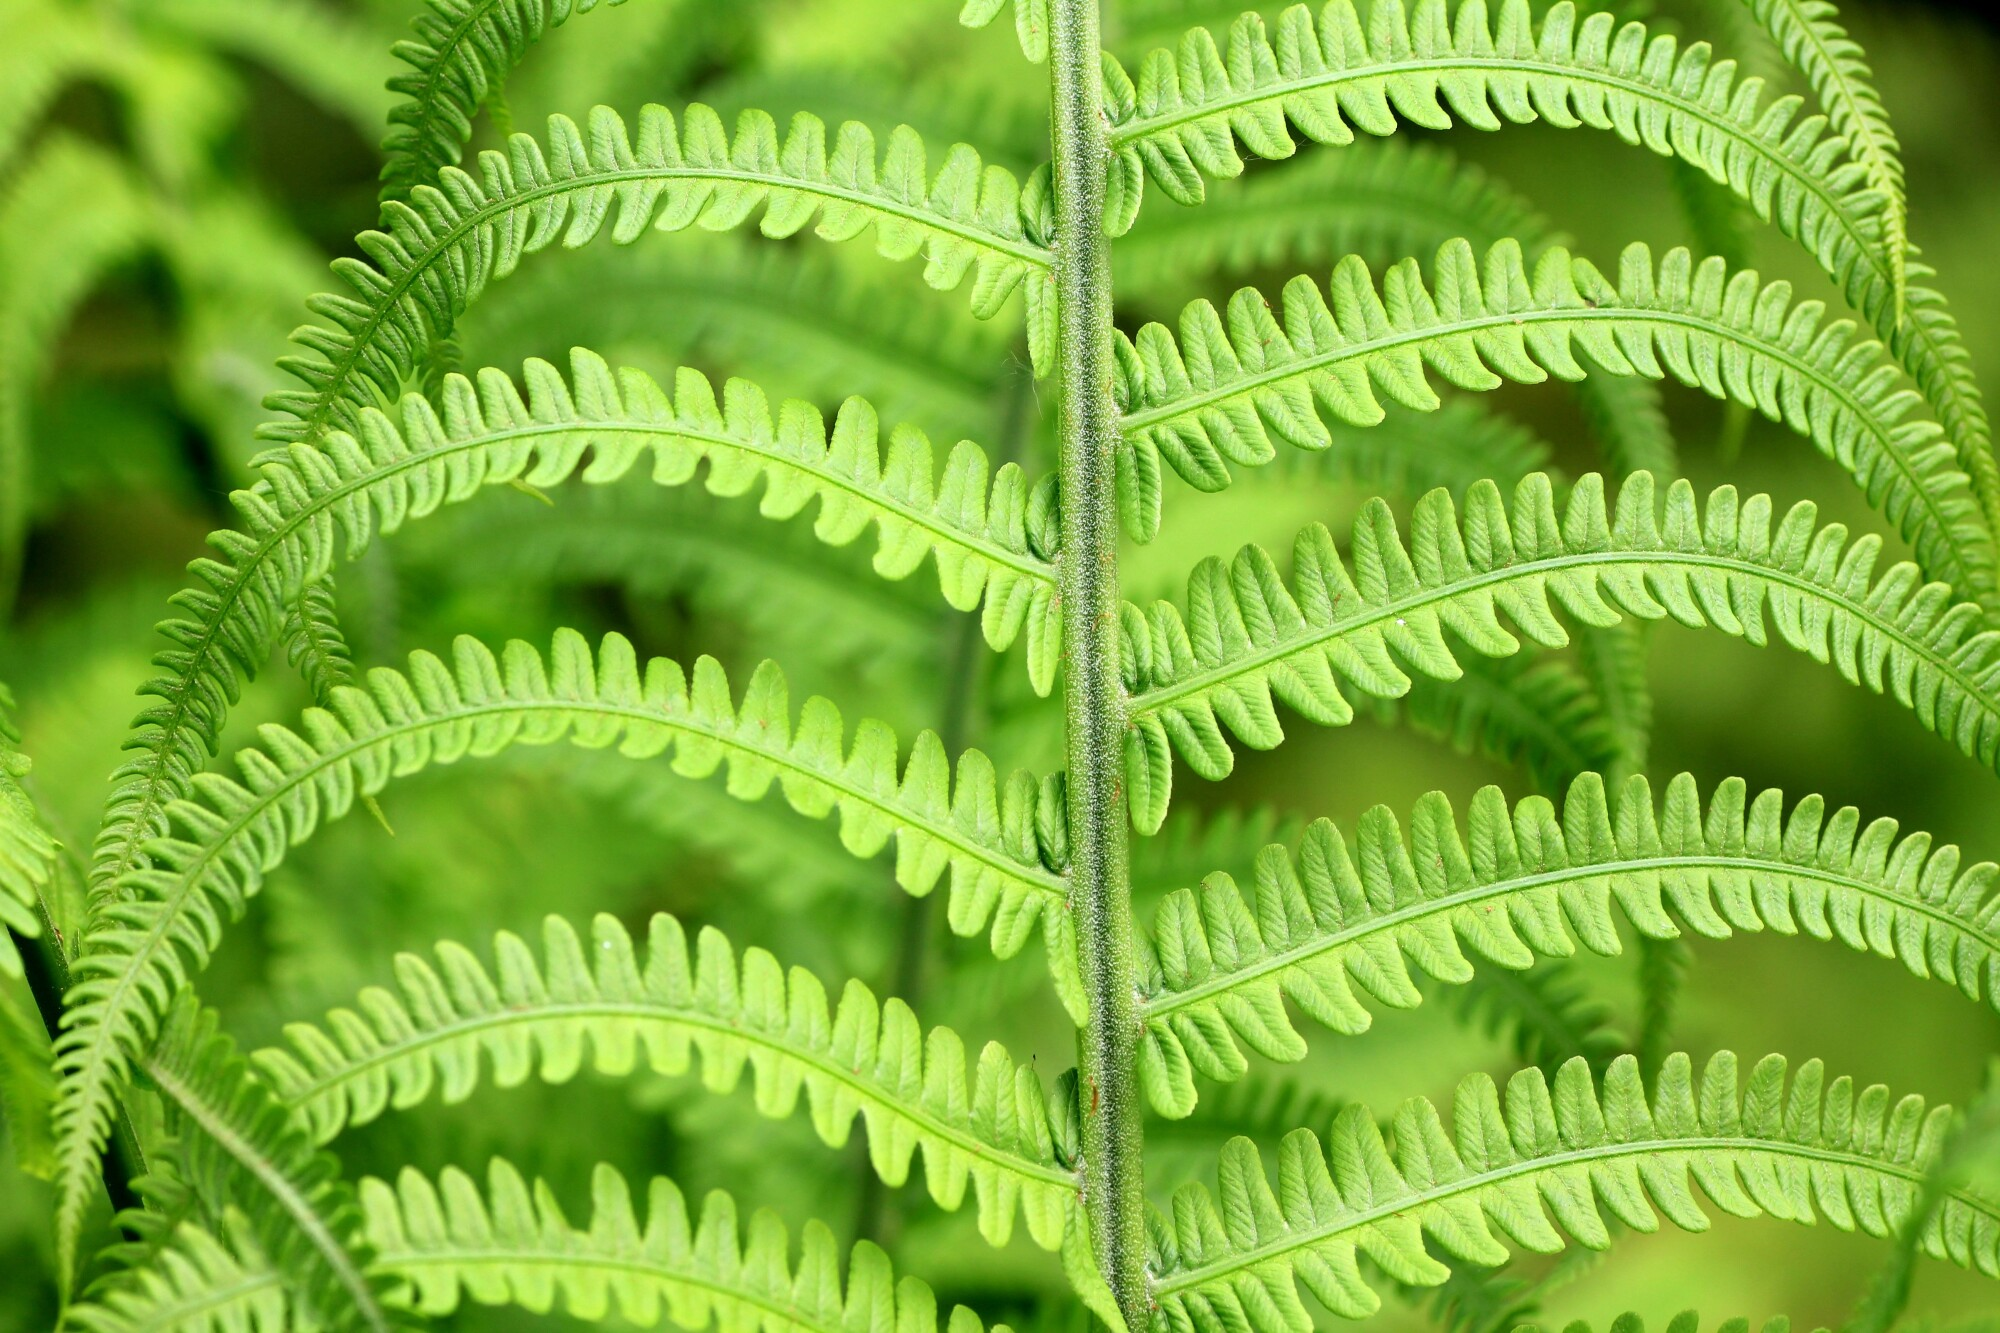 Should I place a fern in my house? Do ferns require a lot of care? Read on to discover the truth about ferns as houseplants here.